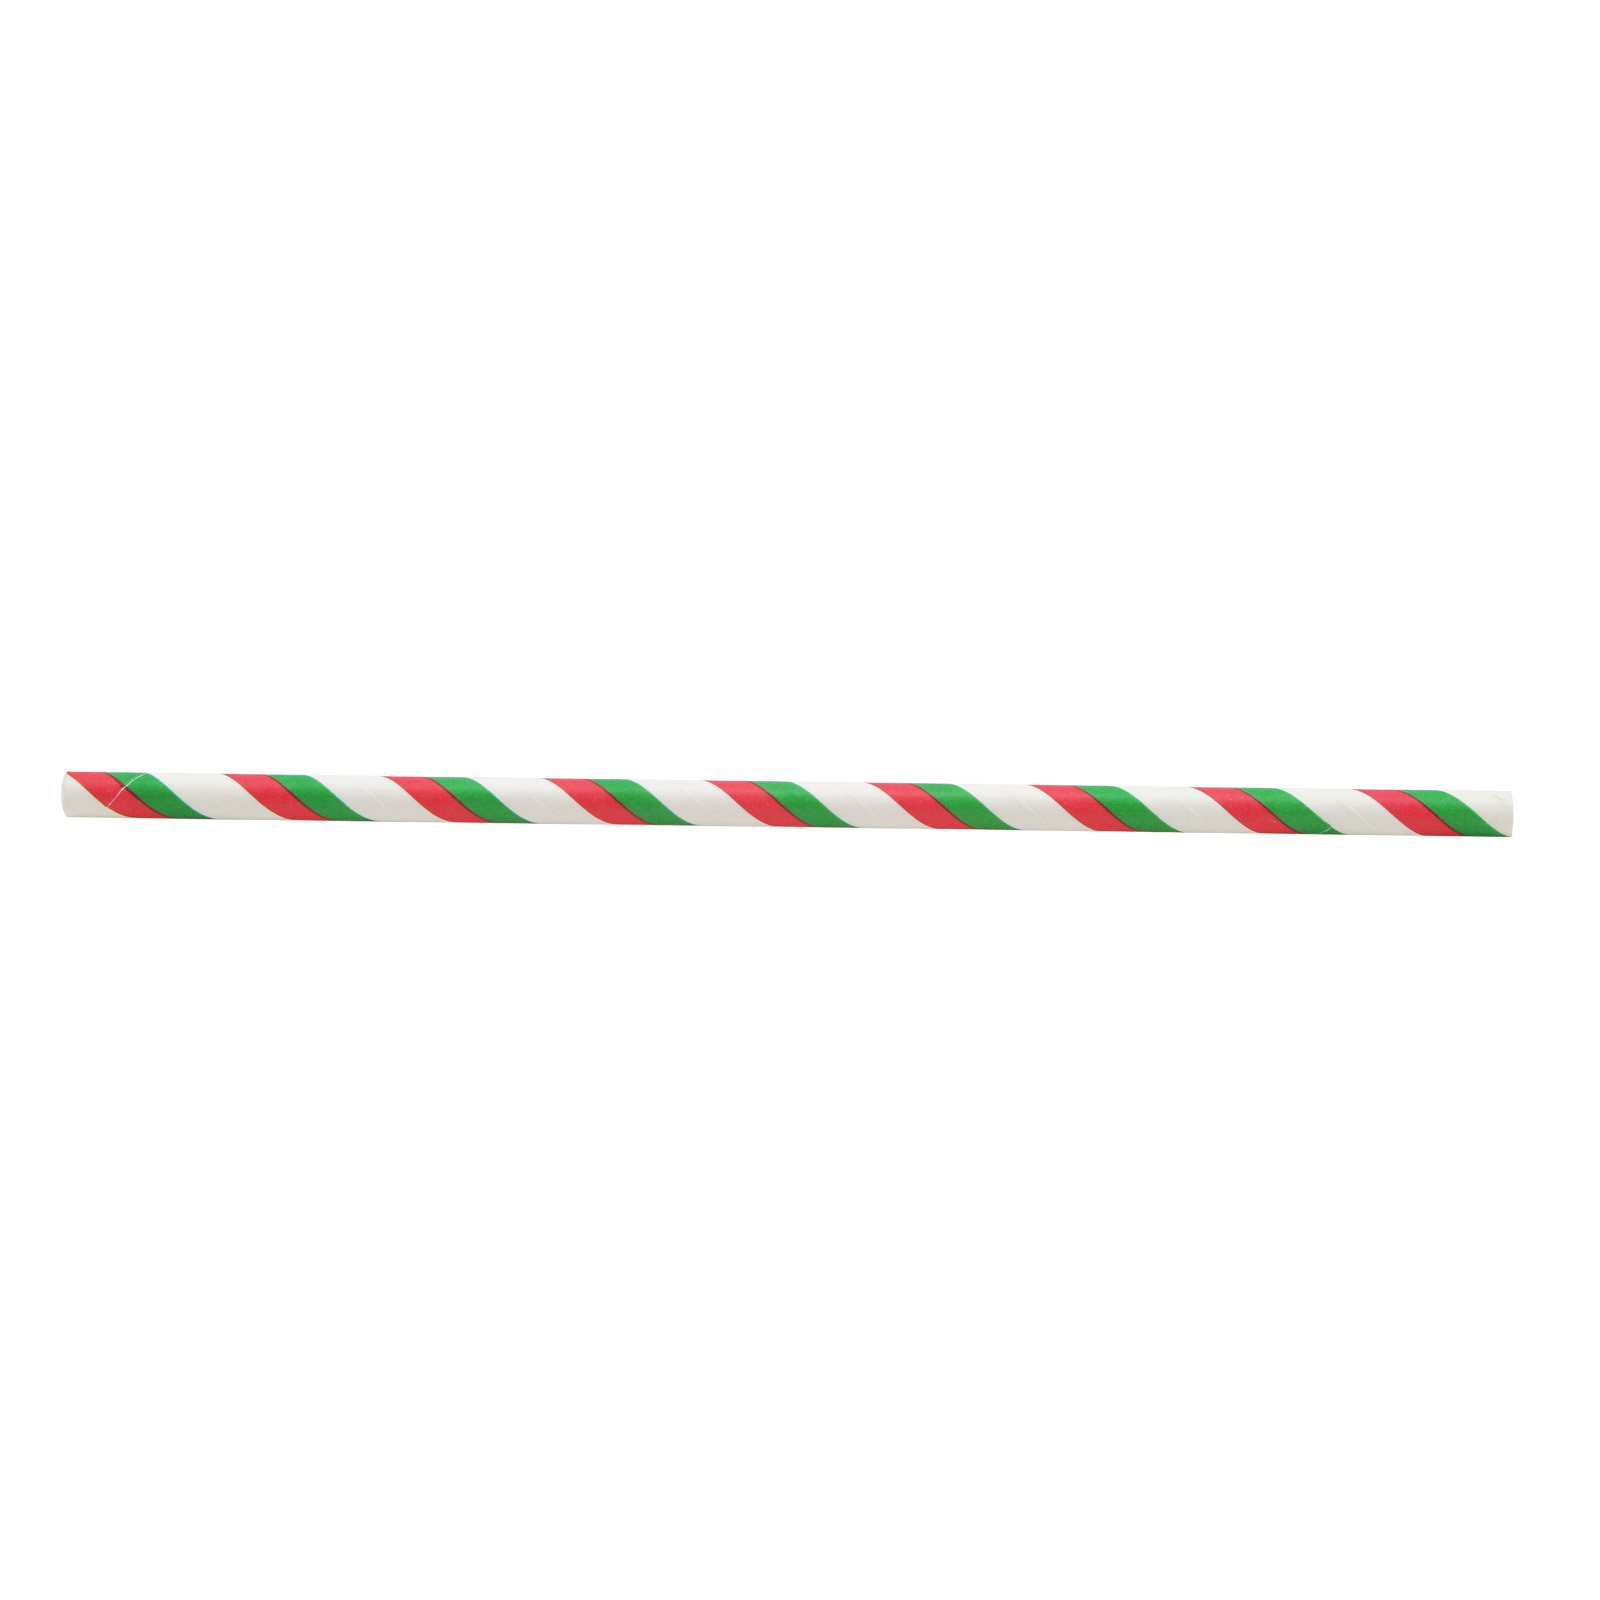 Zinnor Paper Stripe Straws,25 PCS Paper Drinking Straws for Birthday Festival Party Table Decorations (Red Green)